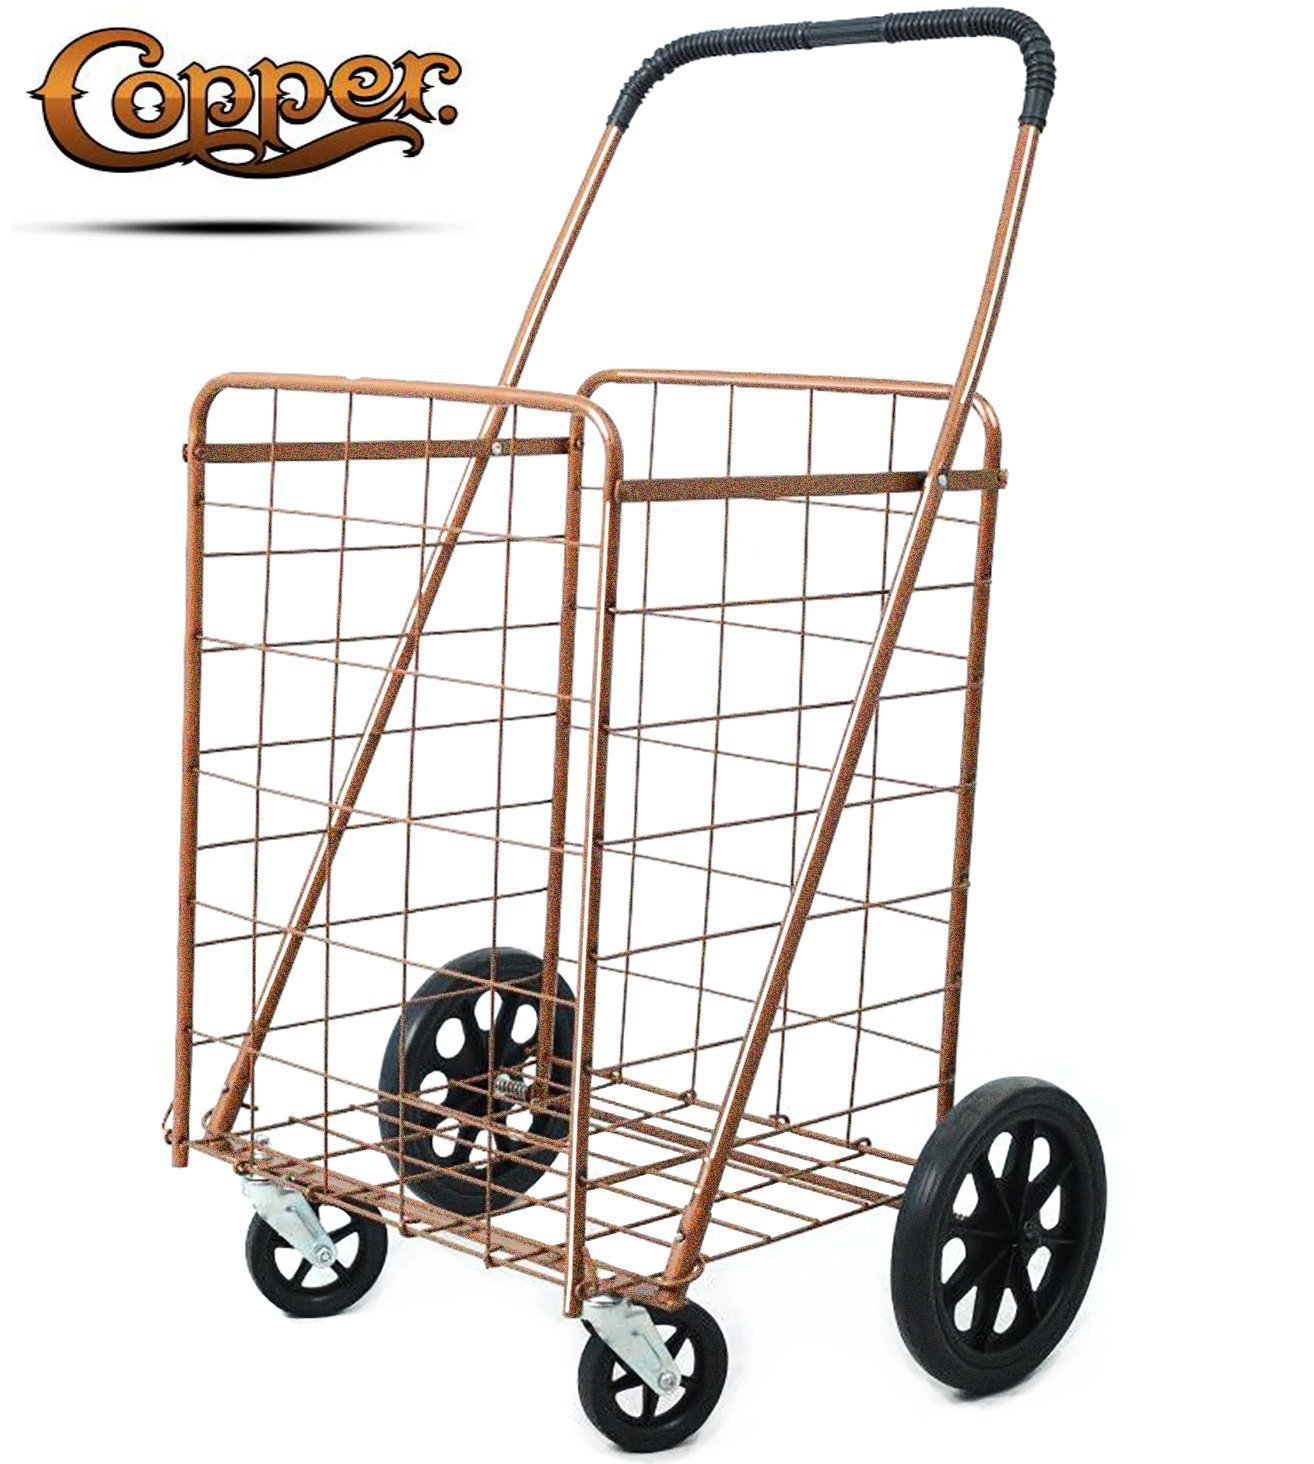 Premium Metallic Copper Folding Shopping Cart 150 lb Capacity, w/Spinning Wheels, Grocery Shopping Made Easy Utility Cart 2 Choice (Single Basket)